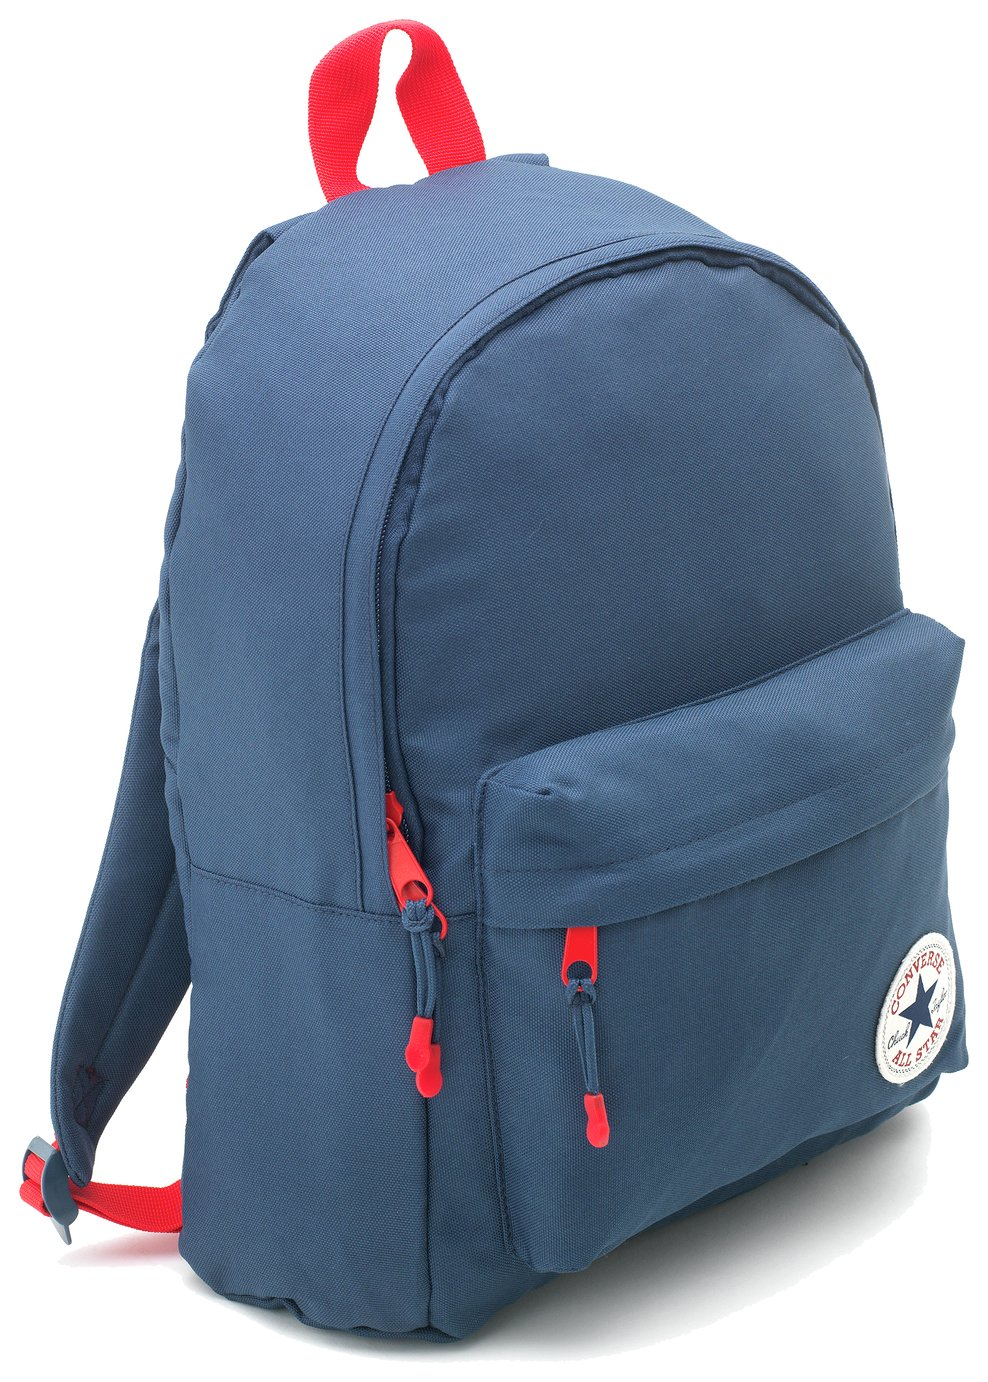 Image of Converse - All Star Backpack - Navy